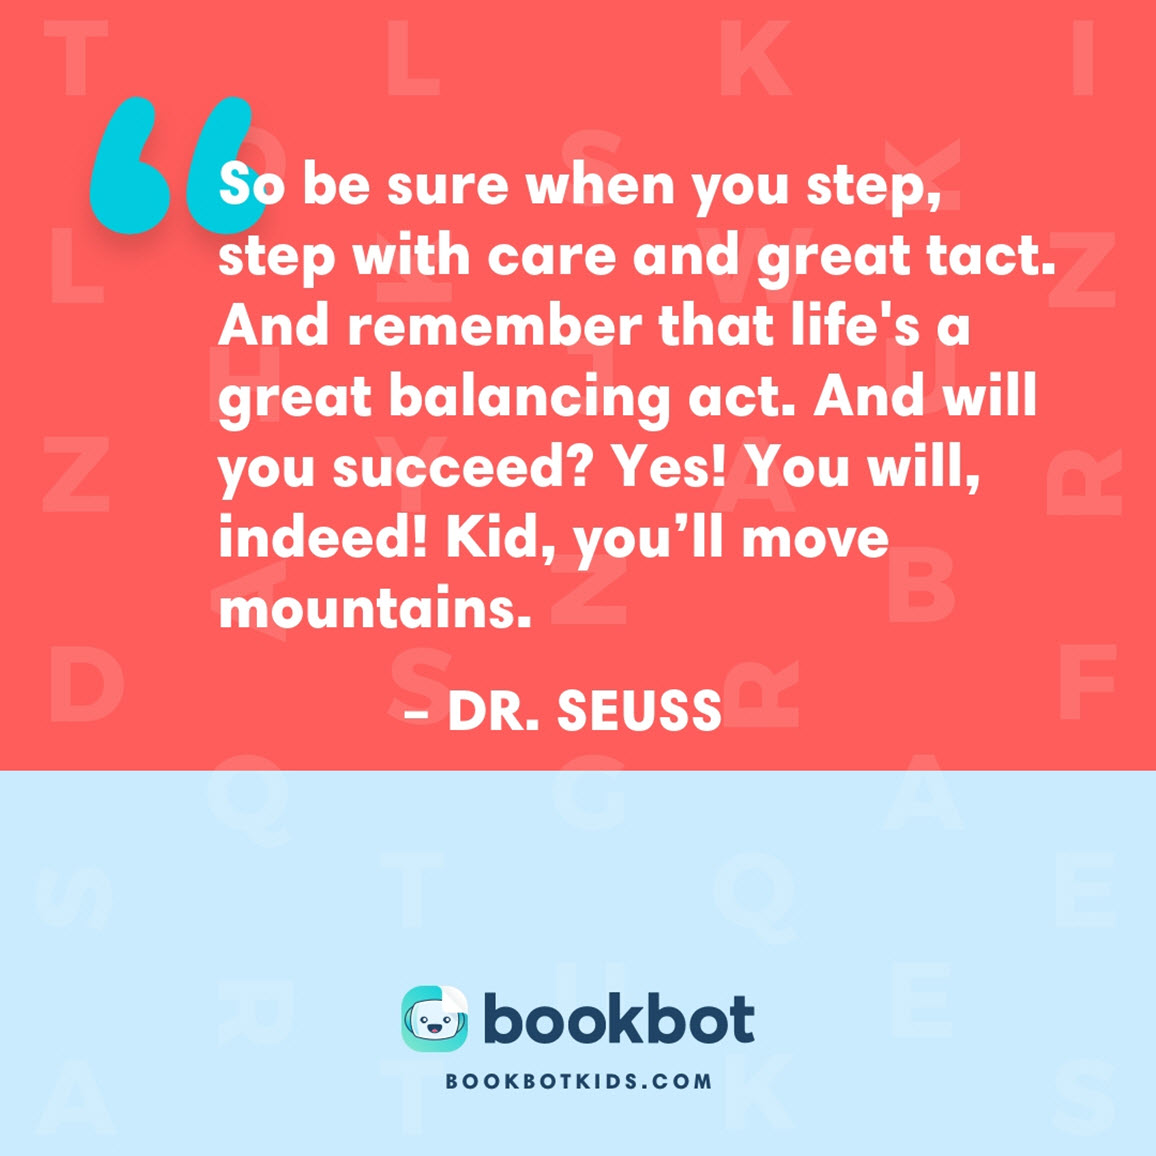 So be sure when you step, step with care and great tact. And remember that life's a great balancing act. And will you succeed? Yes! You will, indeed! Kid, you'll move mountains. – Dr. Seuss